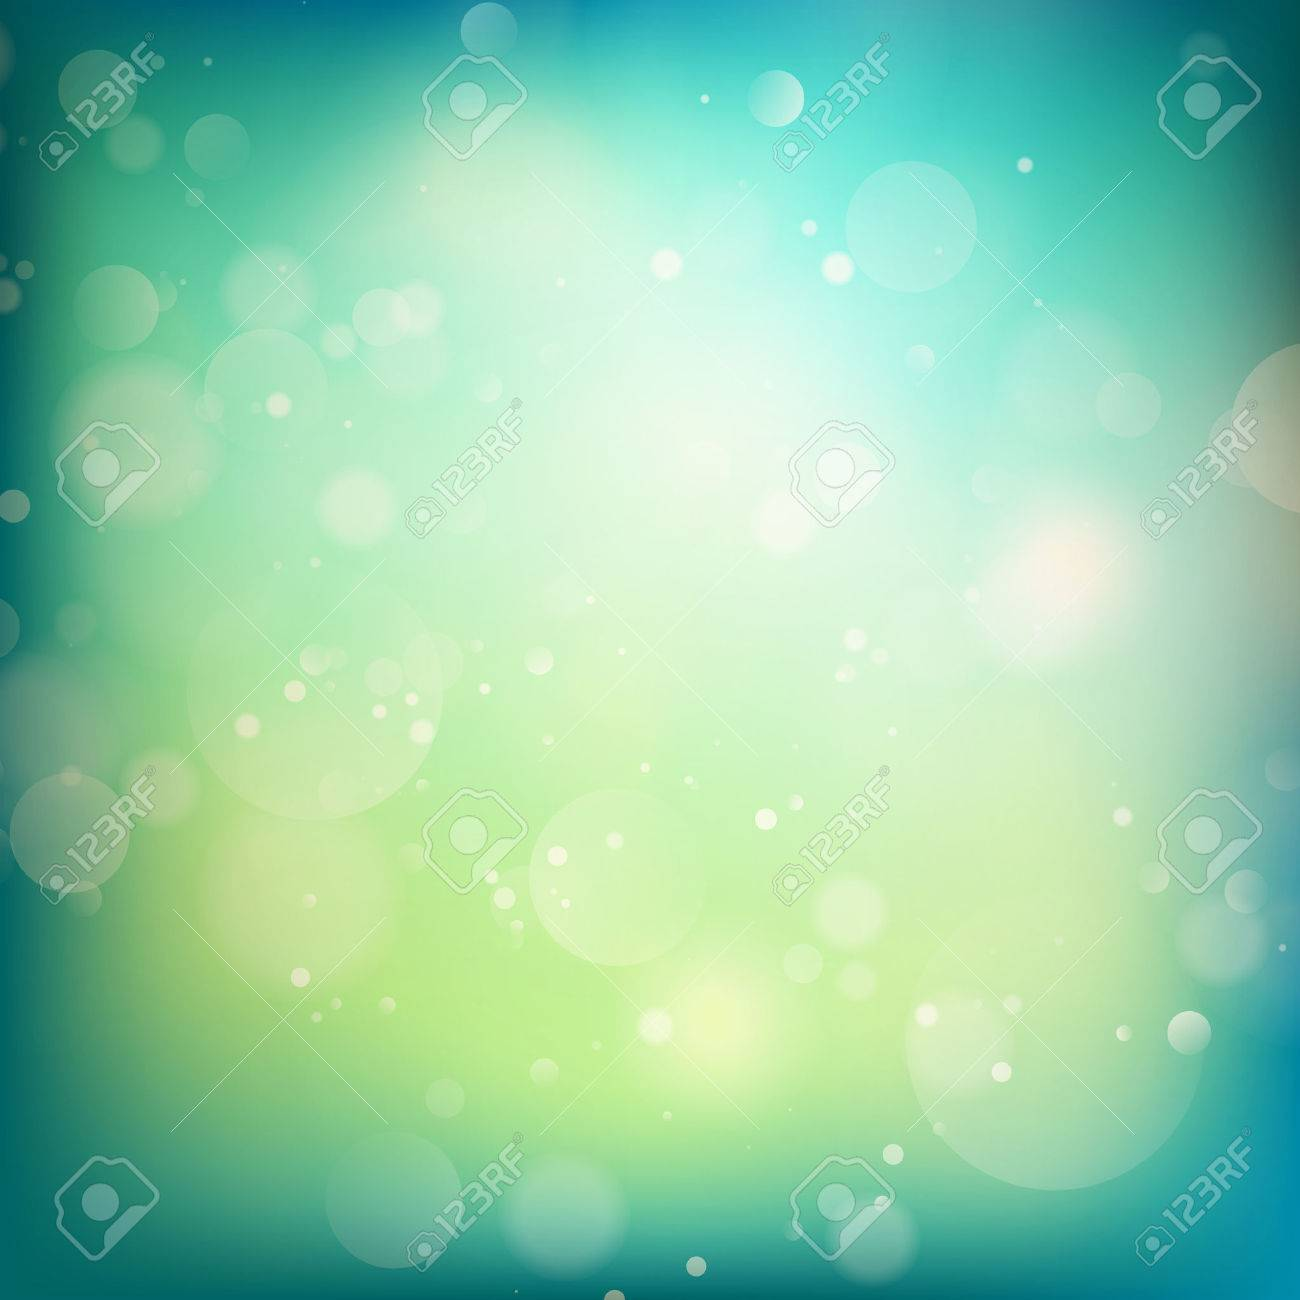 Blue and green defocused lights background. abstract bokeh lights. - 40919664